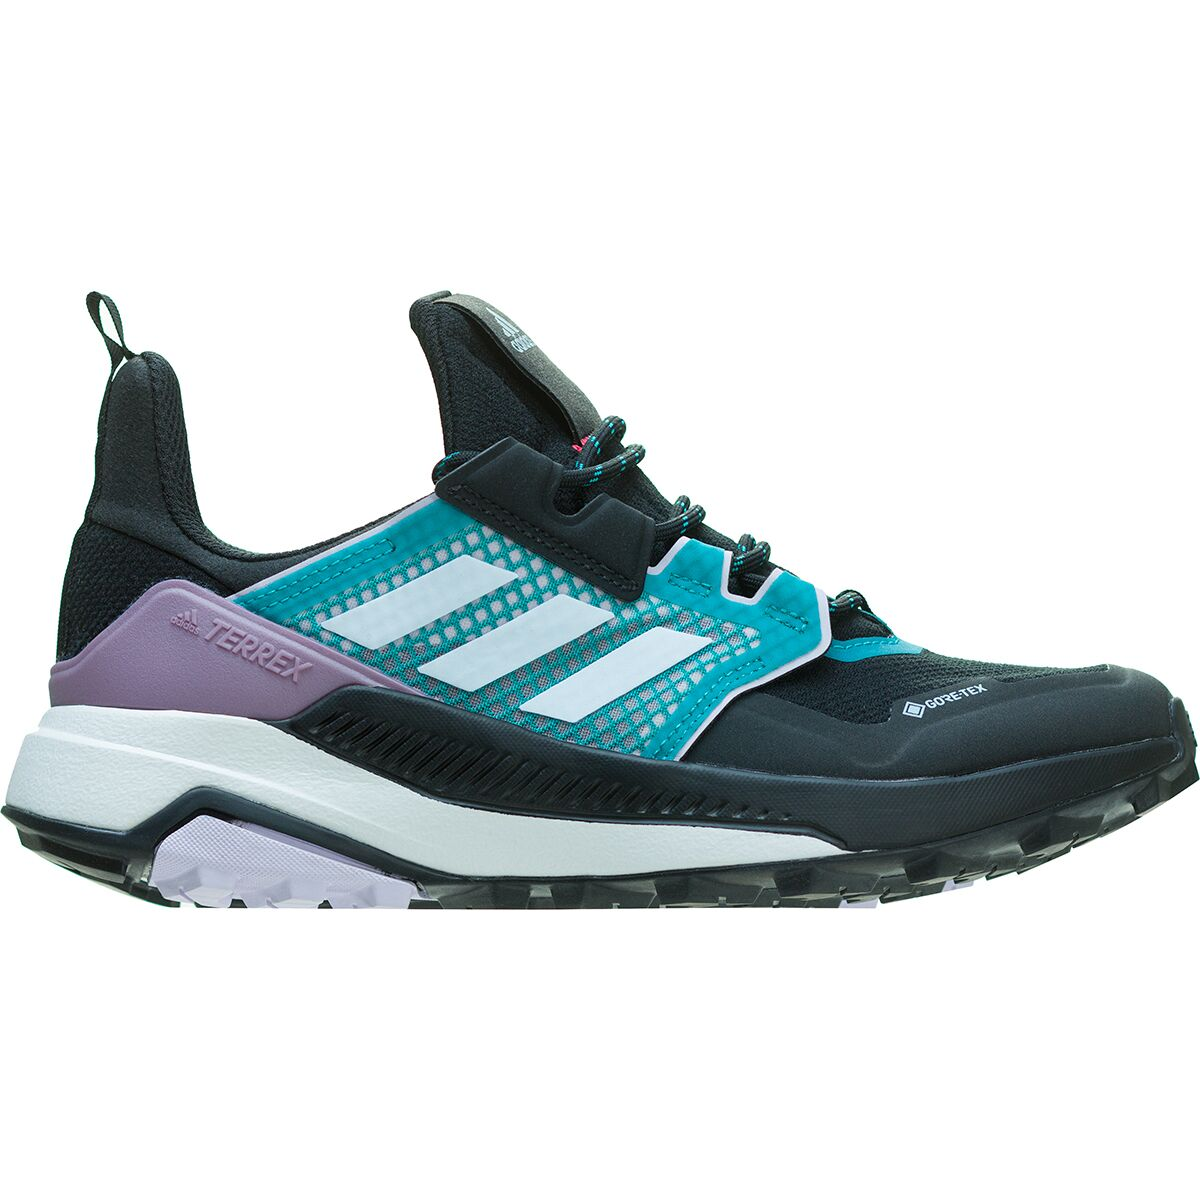 Adidas Outdoor Terrex Trailmaker GTX Hiking Shoe - Women's ...